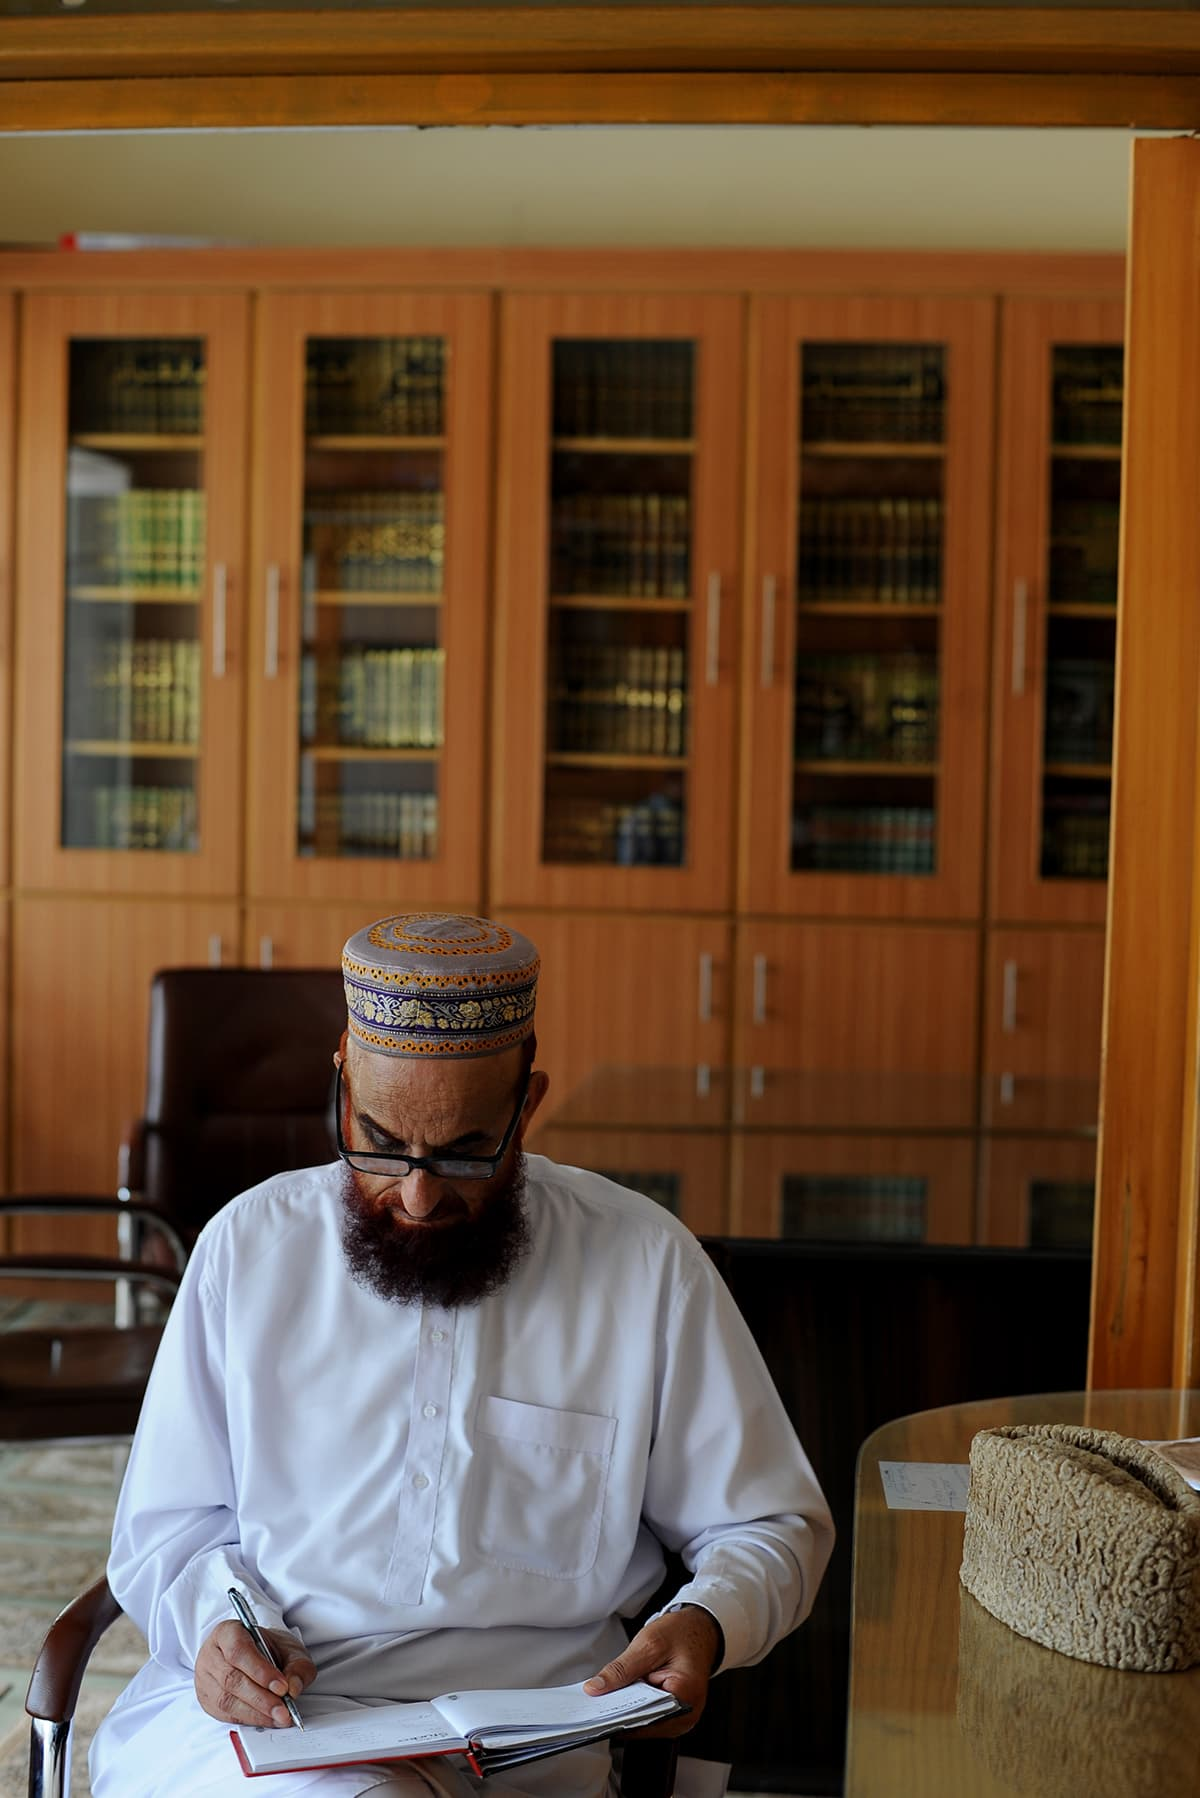 Arranged like a library of religious books, adorned only with functional furnishing, his office is a reflection of his spartan, and academic, lifestyle | Arif Mahmood, White Star